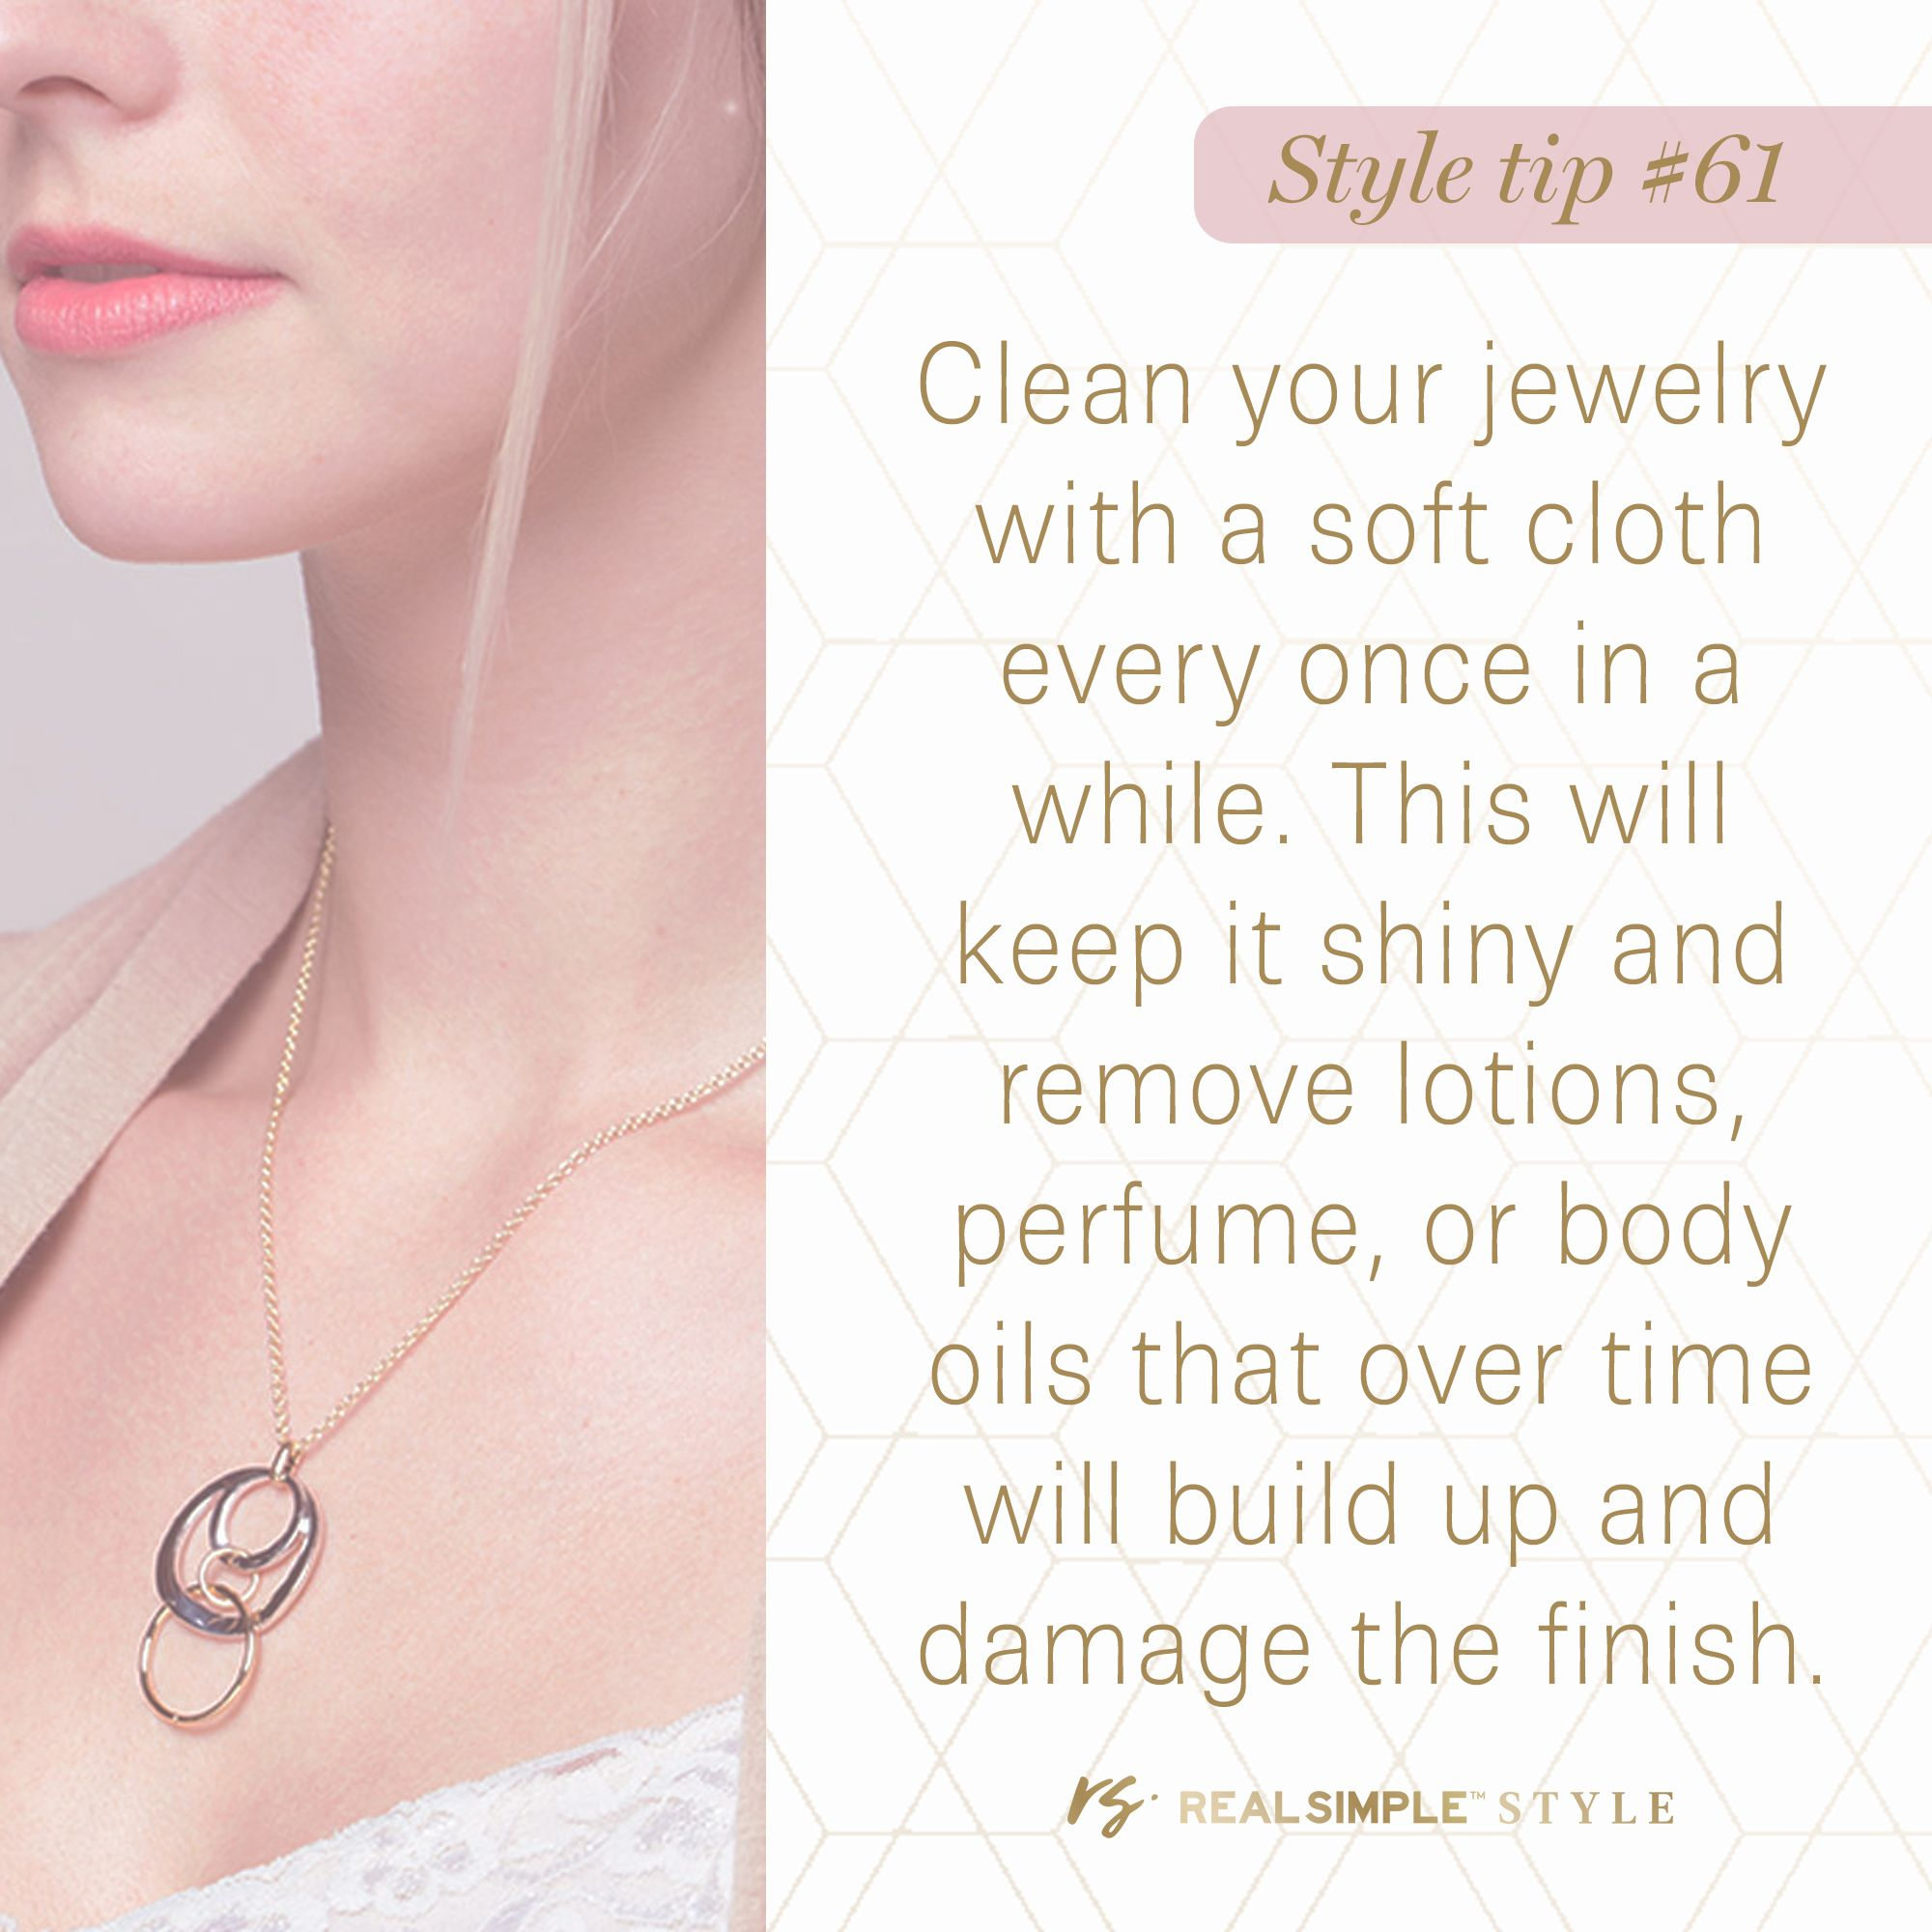 Make sure your jewelry sparkles as much as you do!